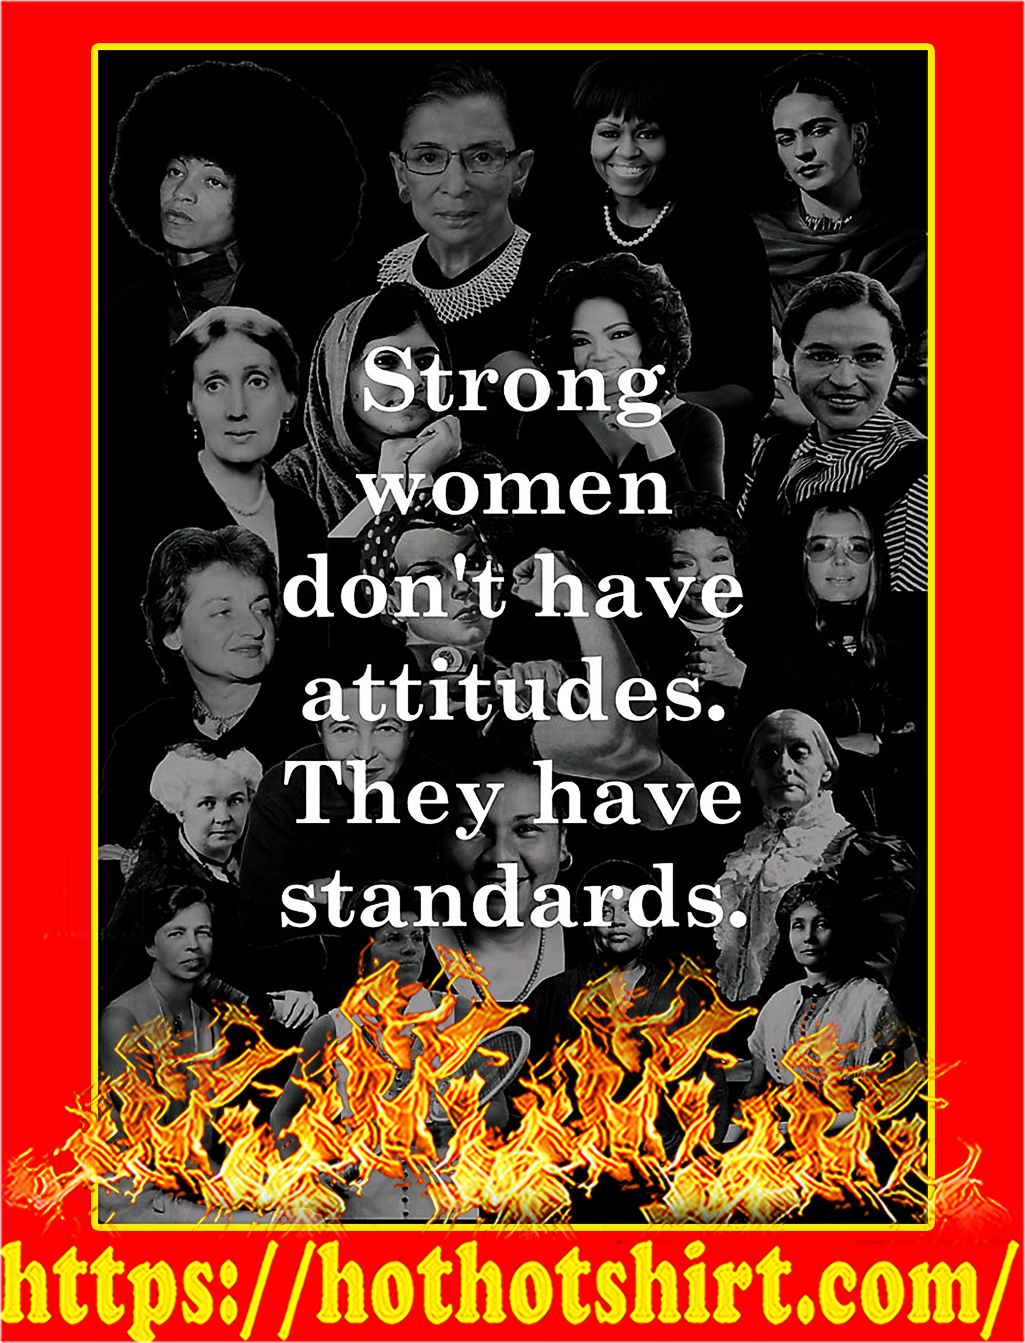 Strong women don't have attitude they have standards poster - A4